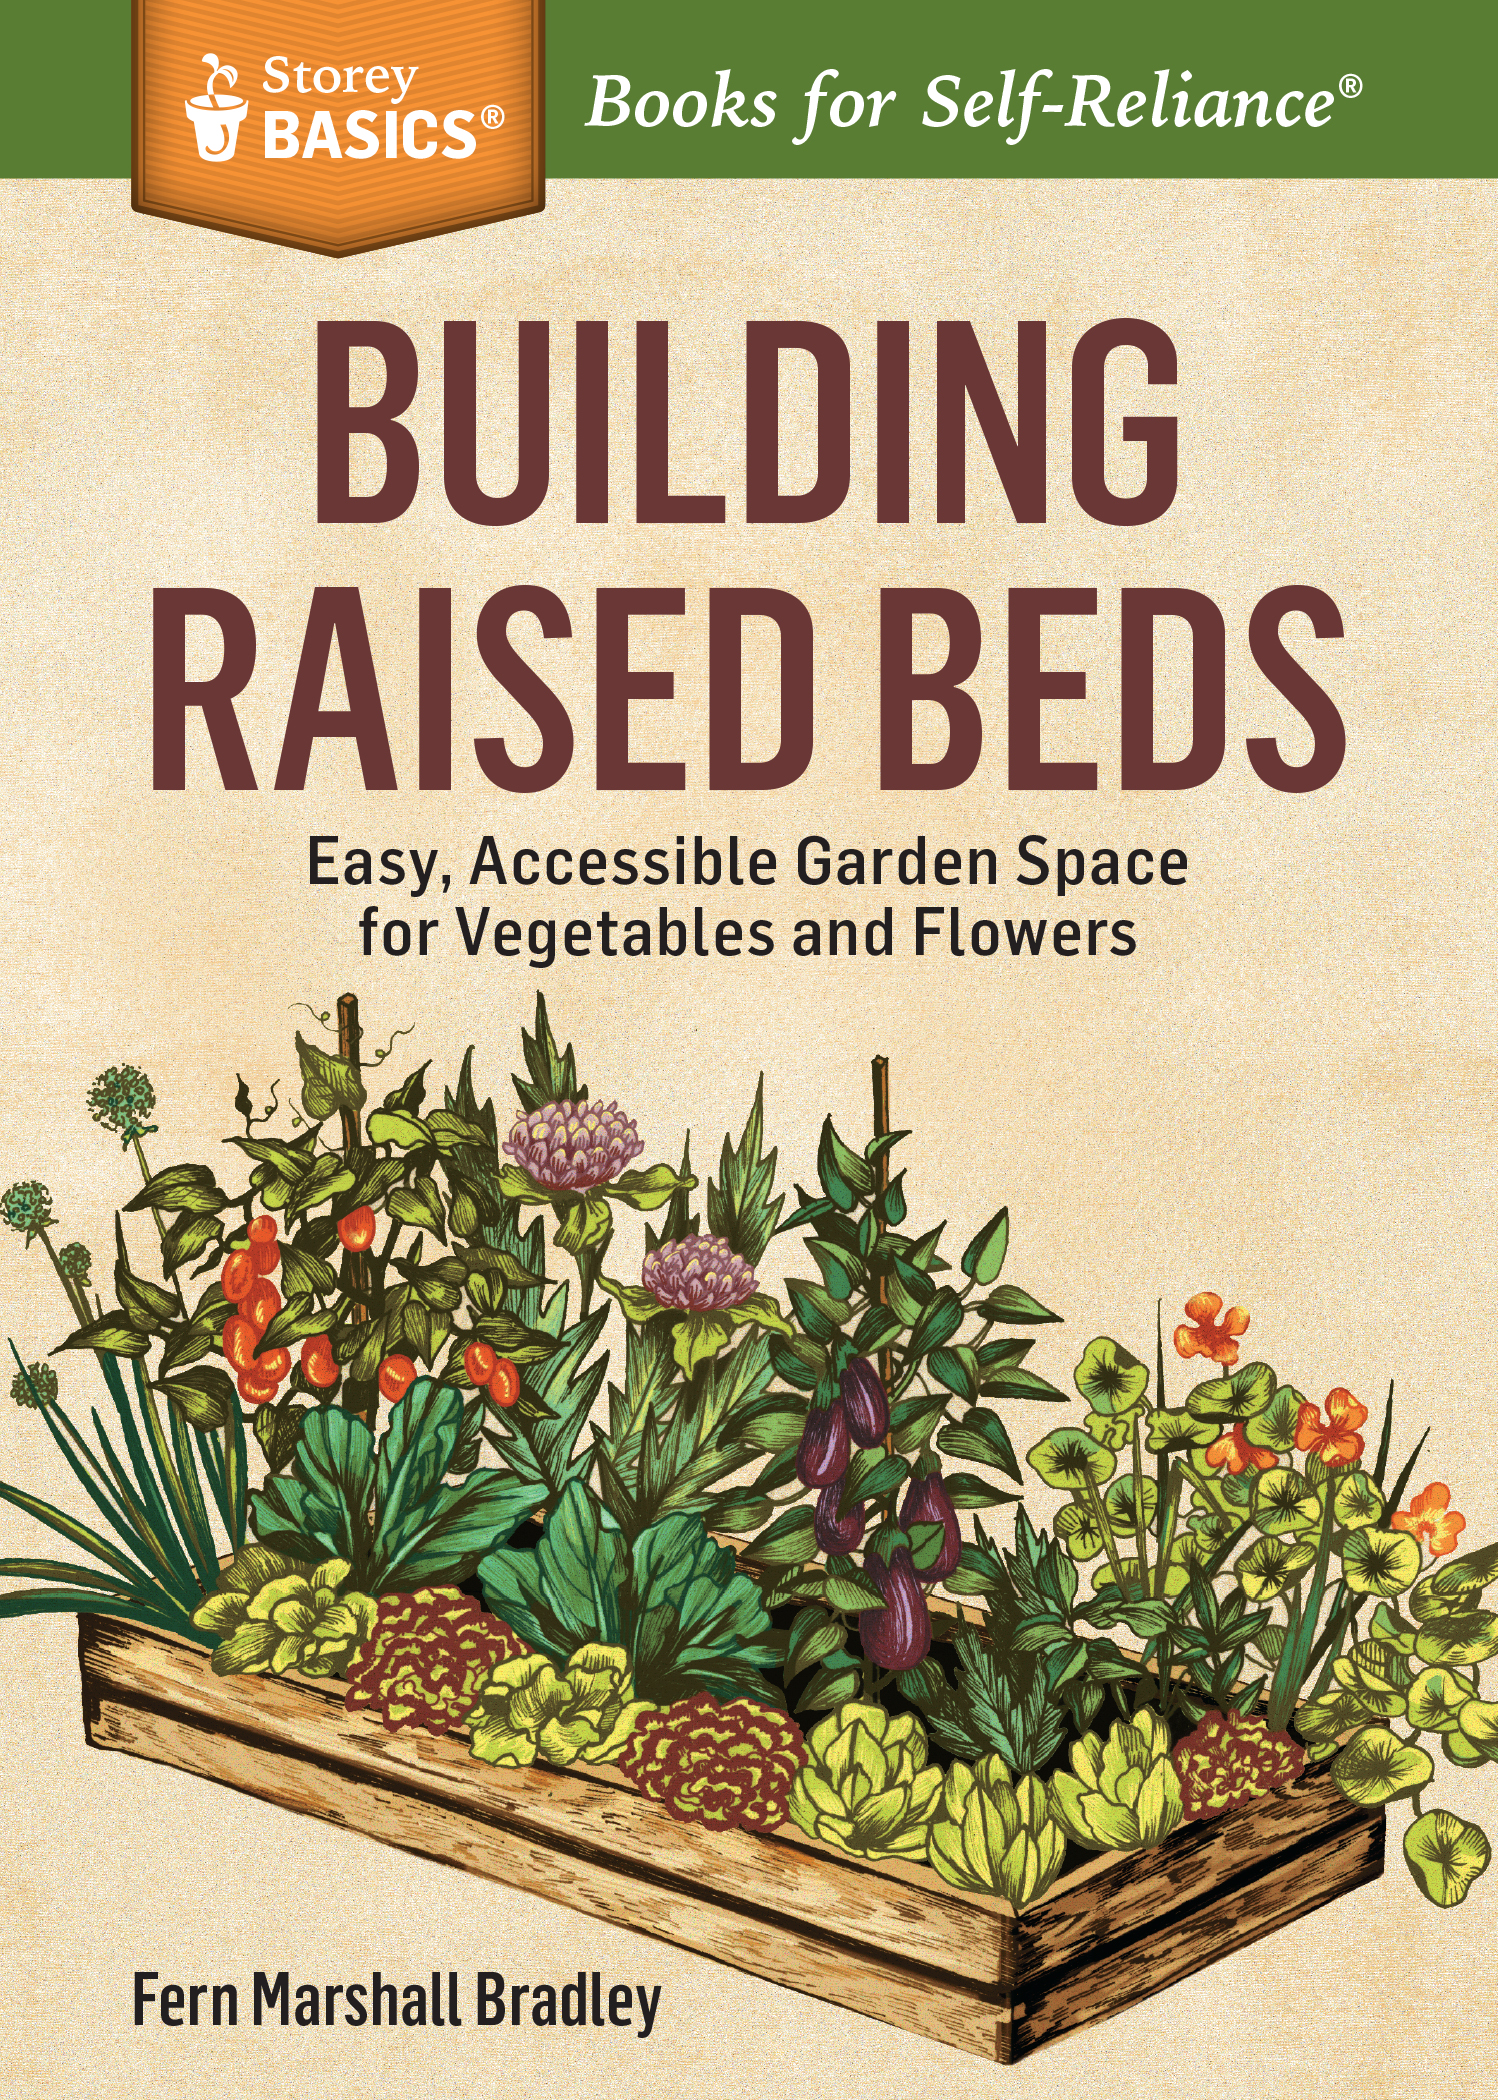 Building Raised Beds Easy, Accessible Garden Space for Vegetables and Flowers. A Storey BASICS® Title - Fern Marshall Bradley